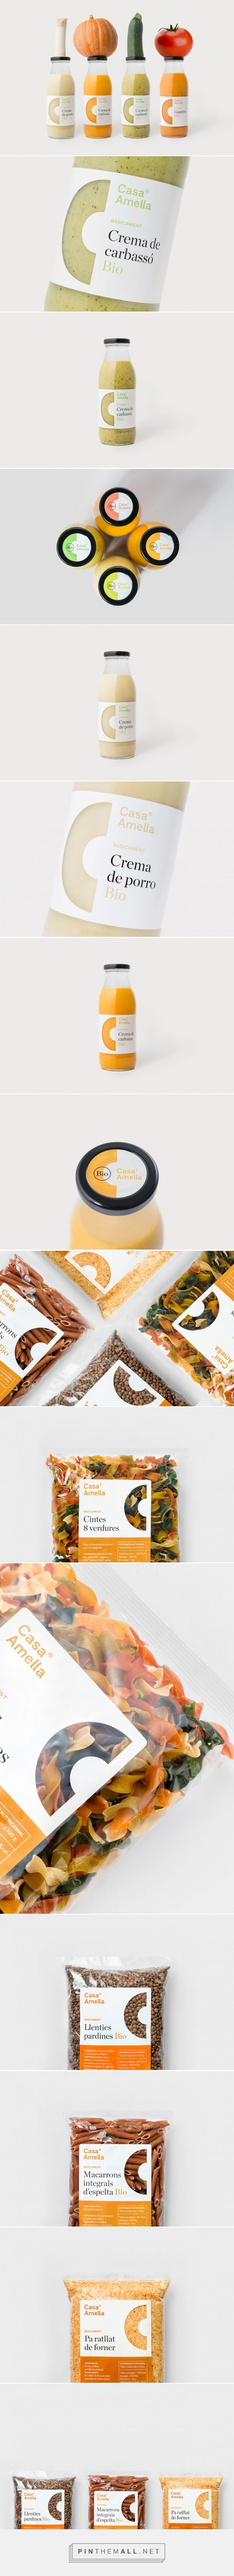 Casa Amella packaging designed by Bisgràfic - http://www.packagingoftheworld.com/2015/10/casa-amella.html